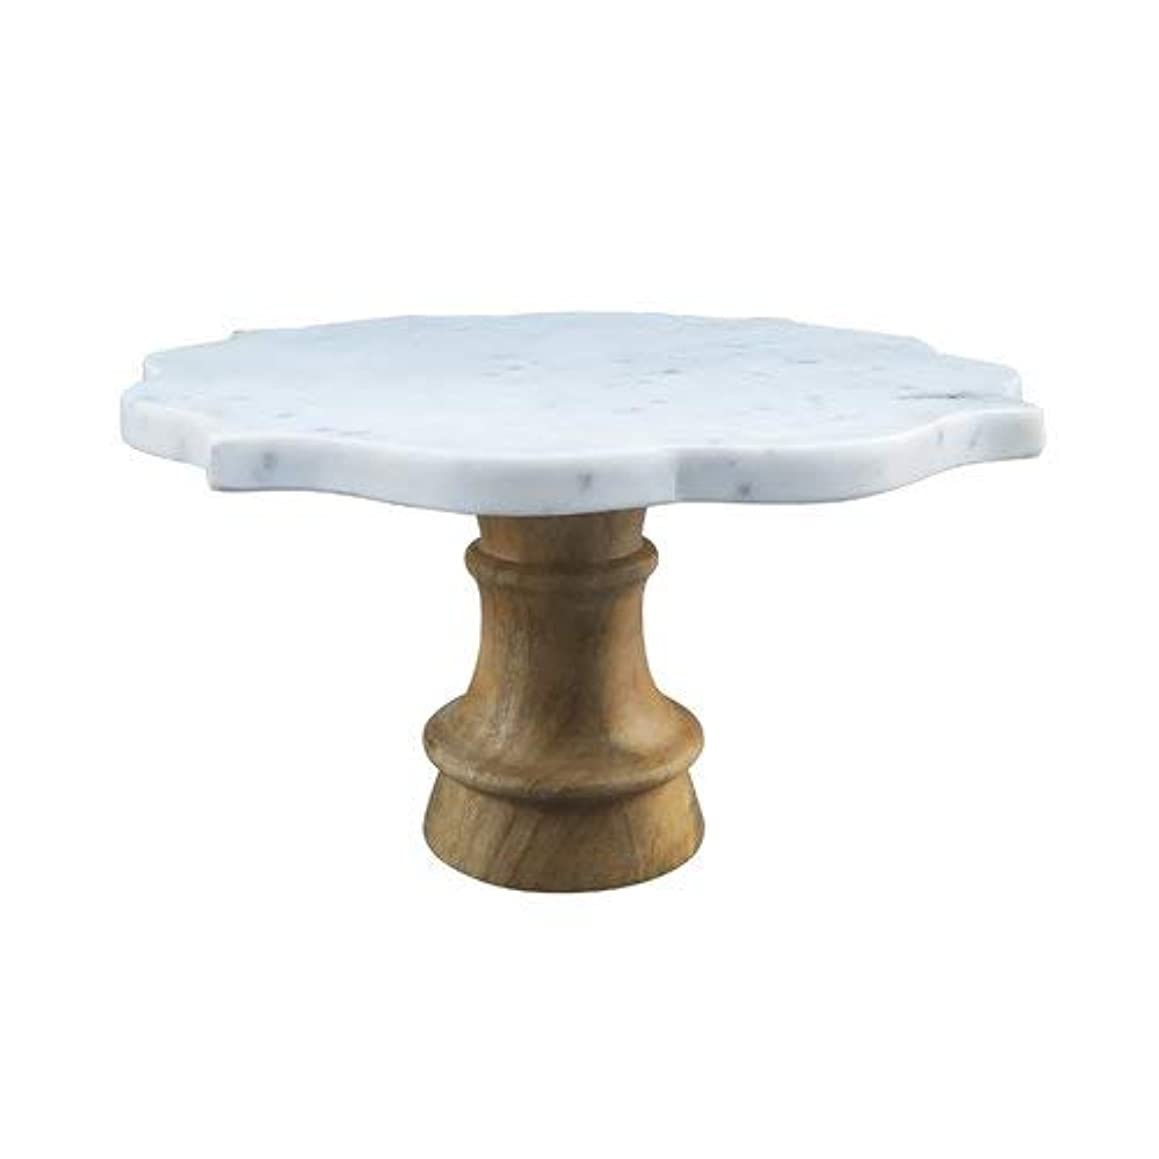 OKSLO Marble cake stand